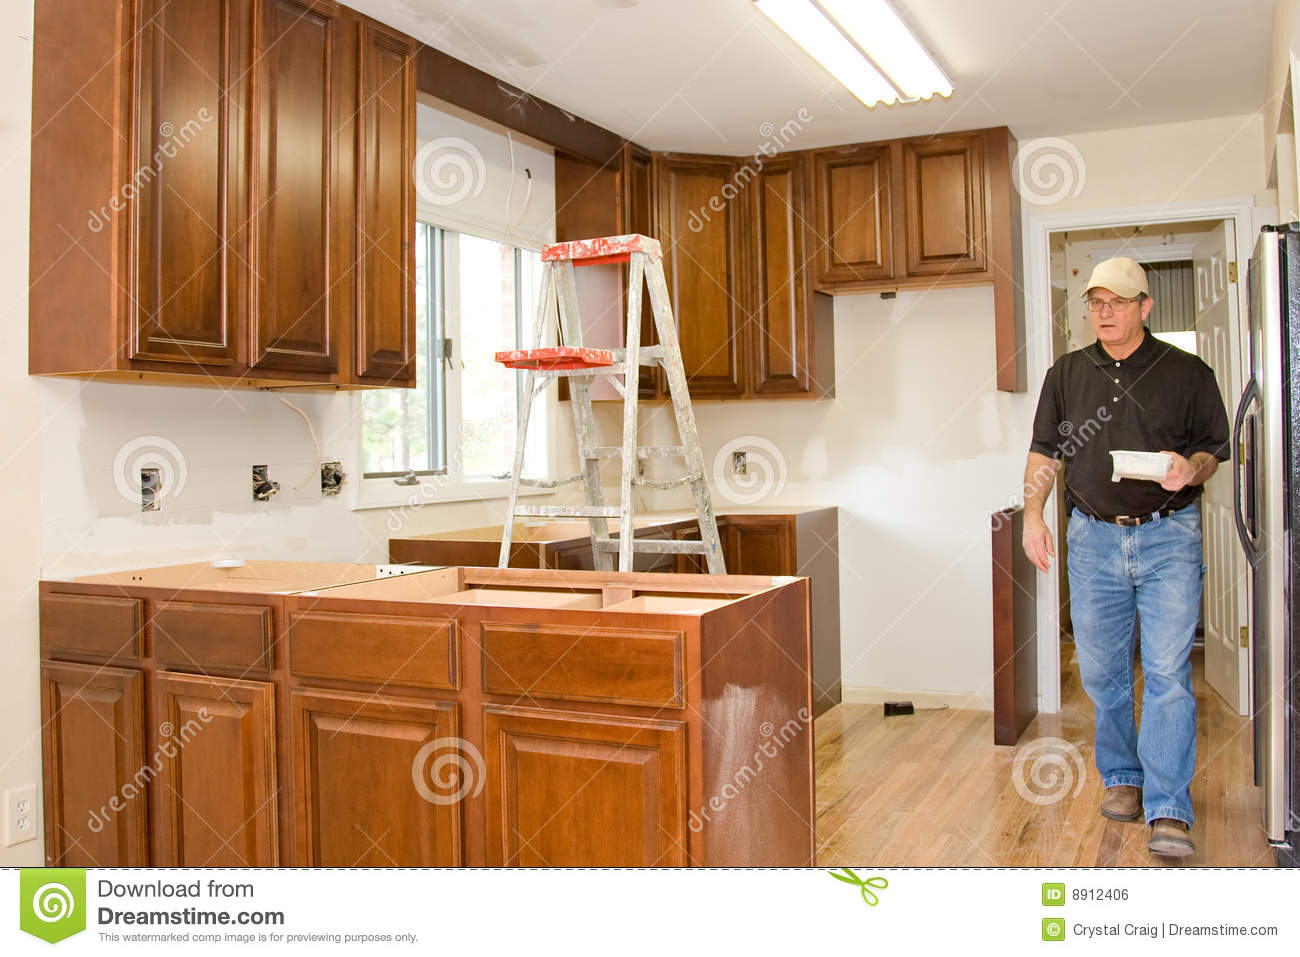 Kitchen remodel cabinets home improvement royalty free for Kitchen home improvement